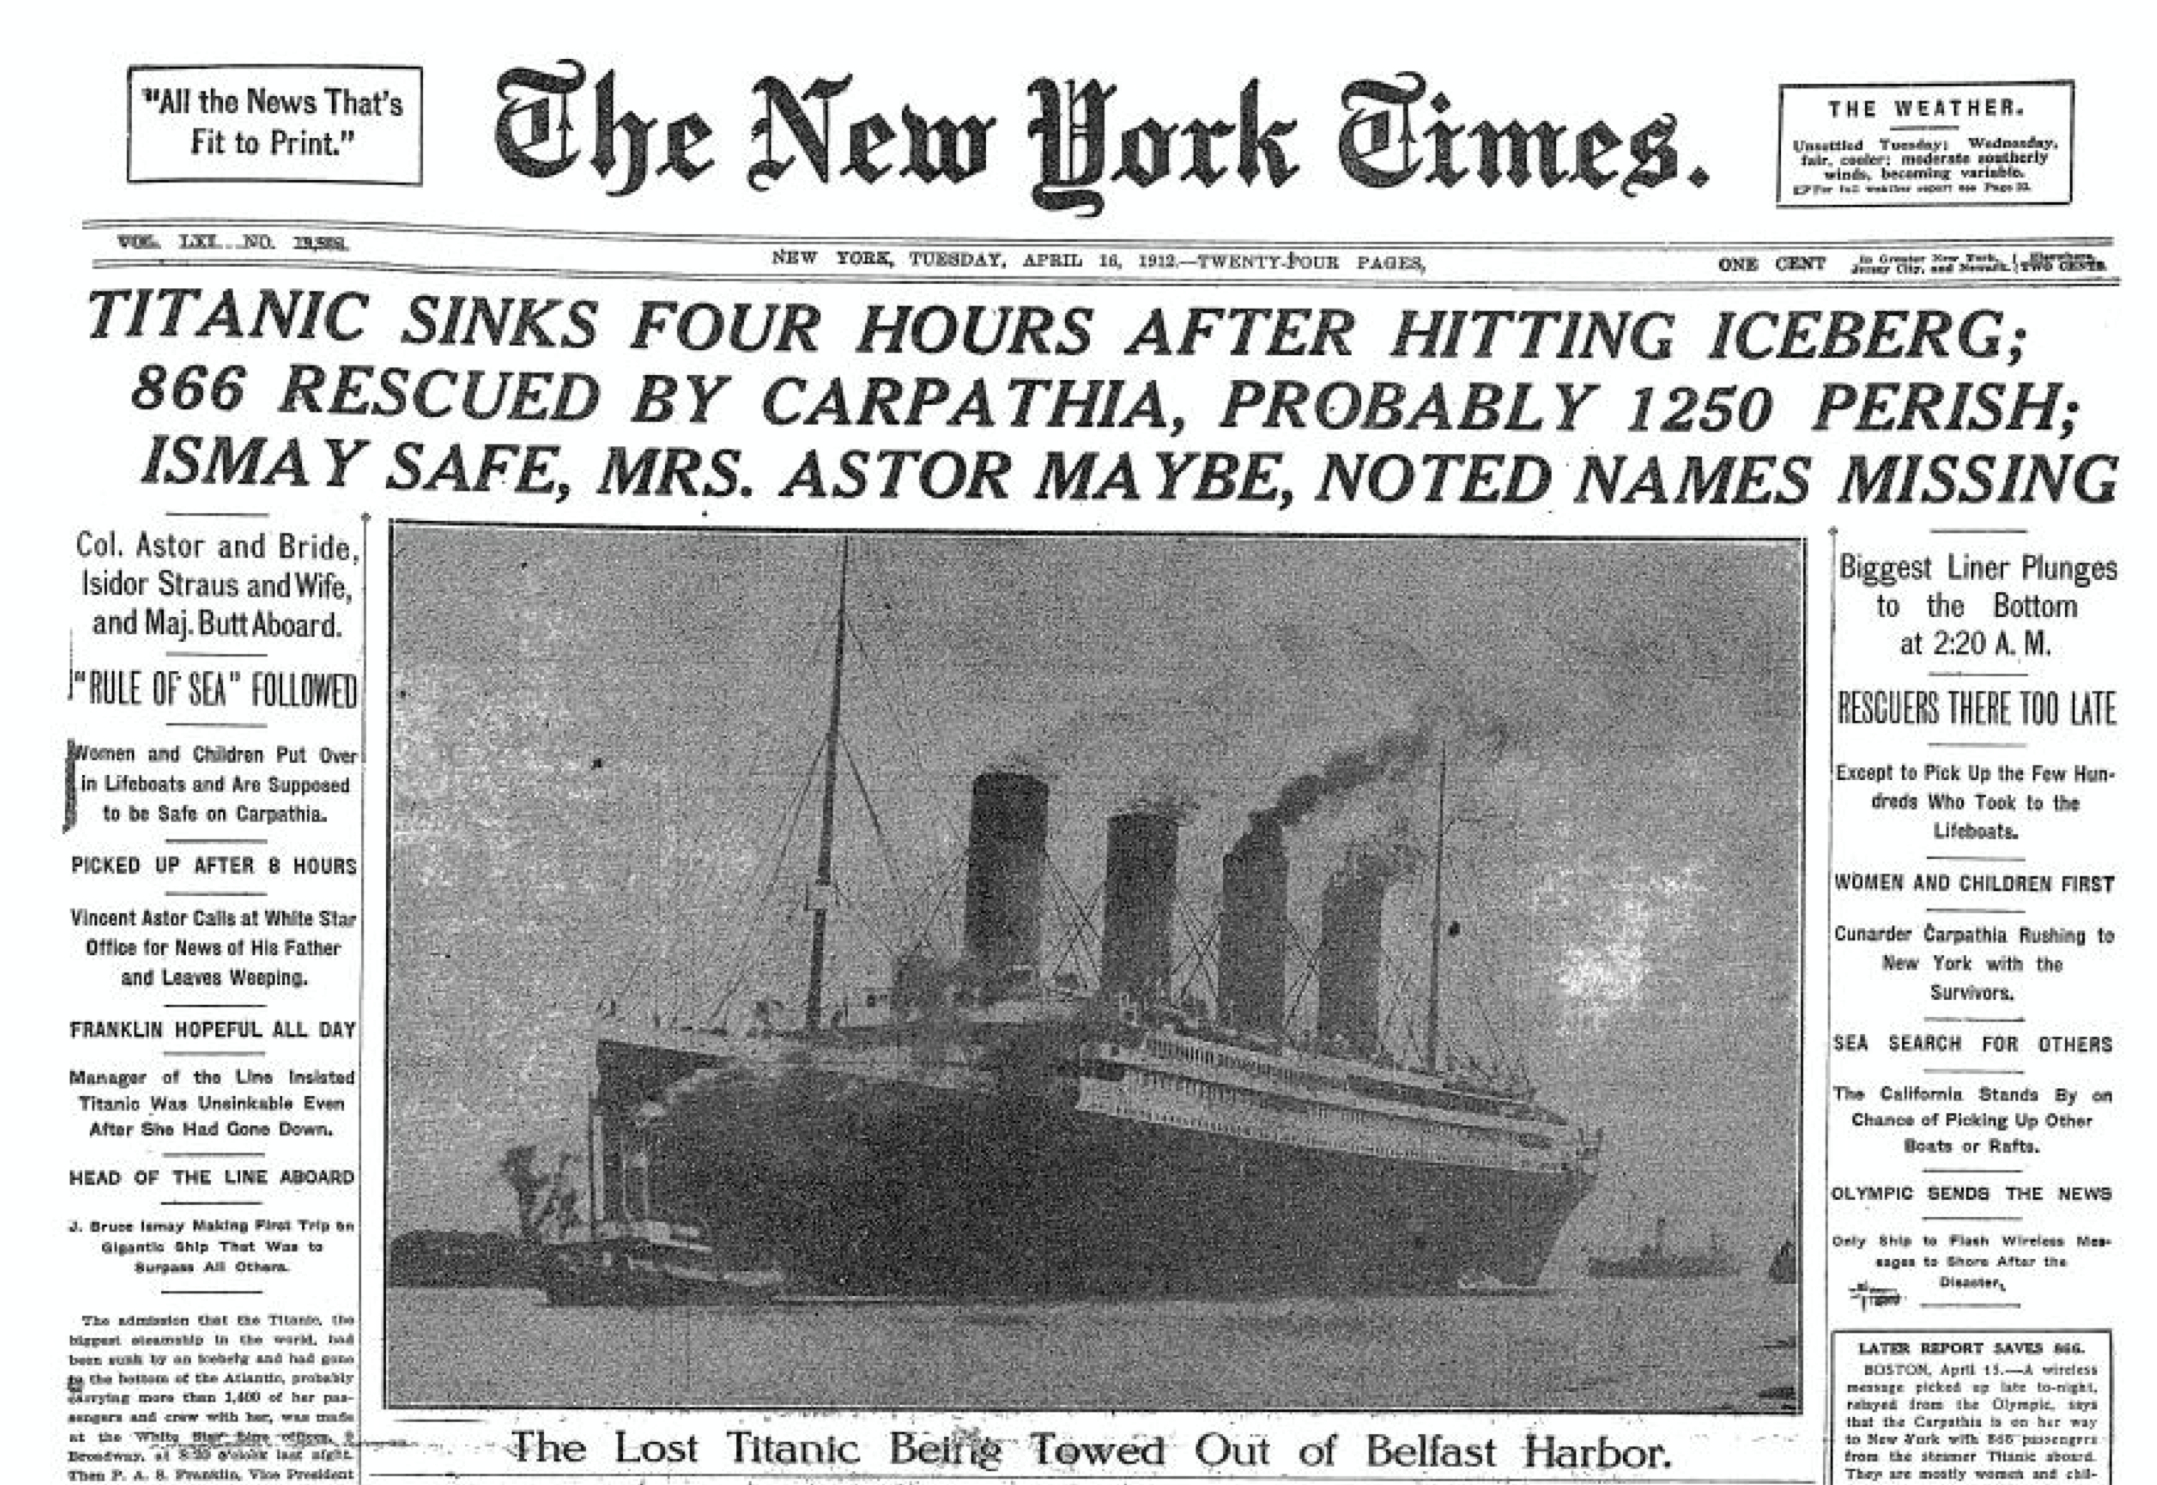 April 16, 1912 New York Times